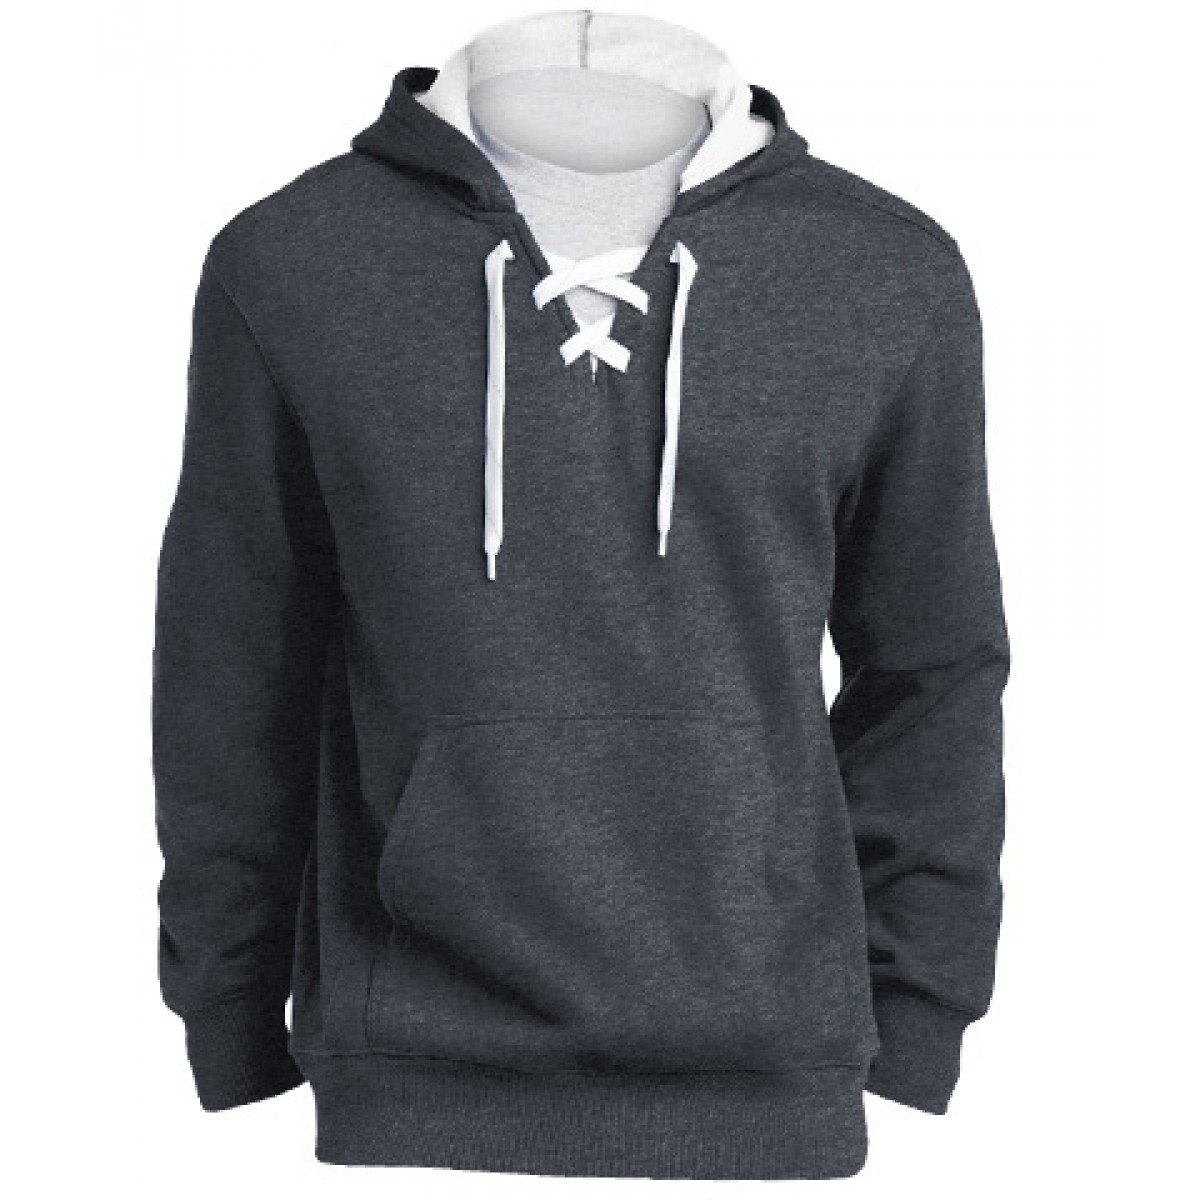 Lace Up Pullover Hooded Sweatshirt-Charocal-S